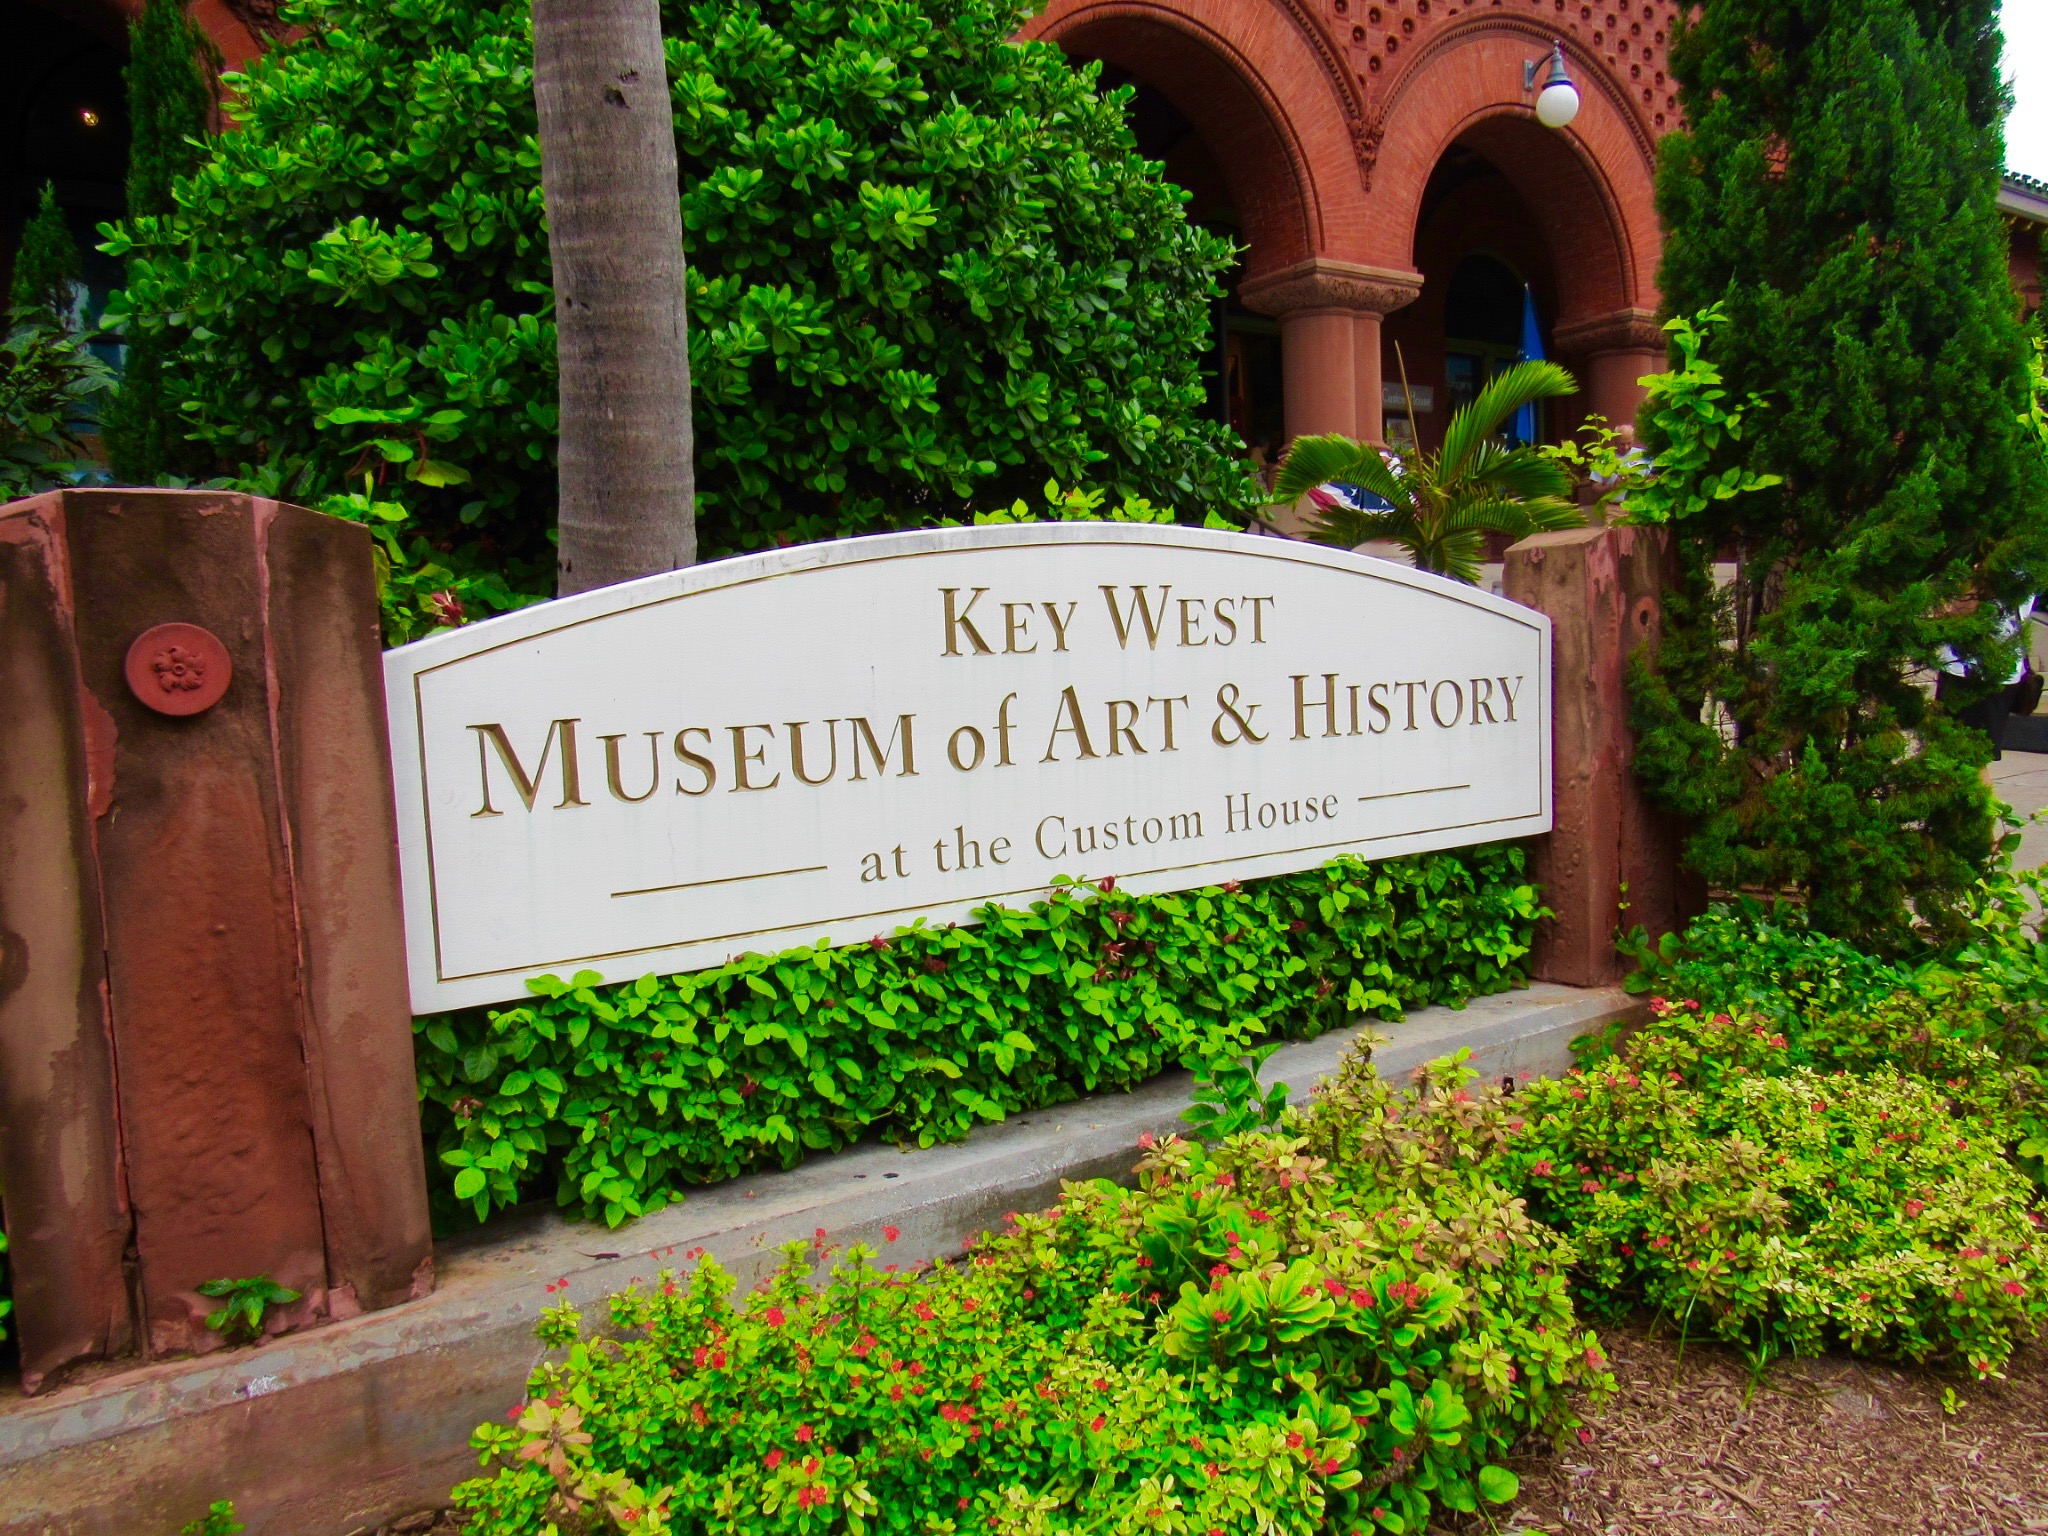 Museum of Art & History Key West, Fl